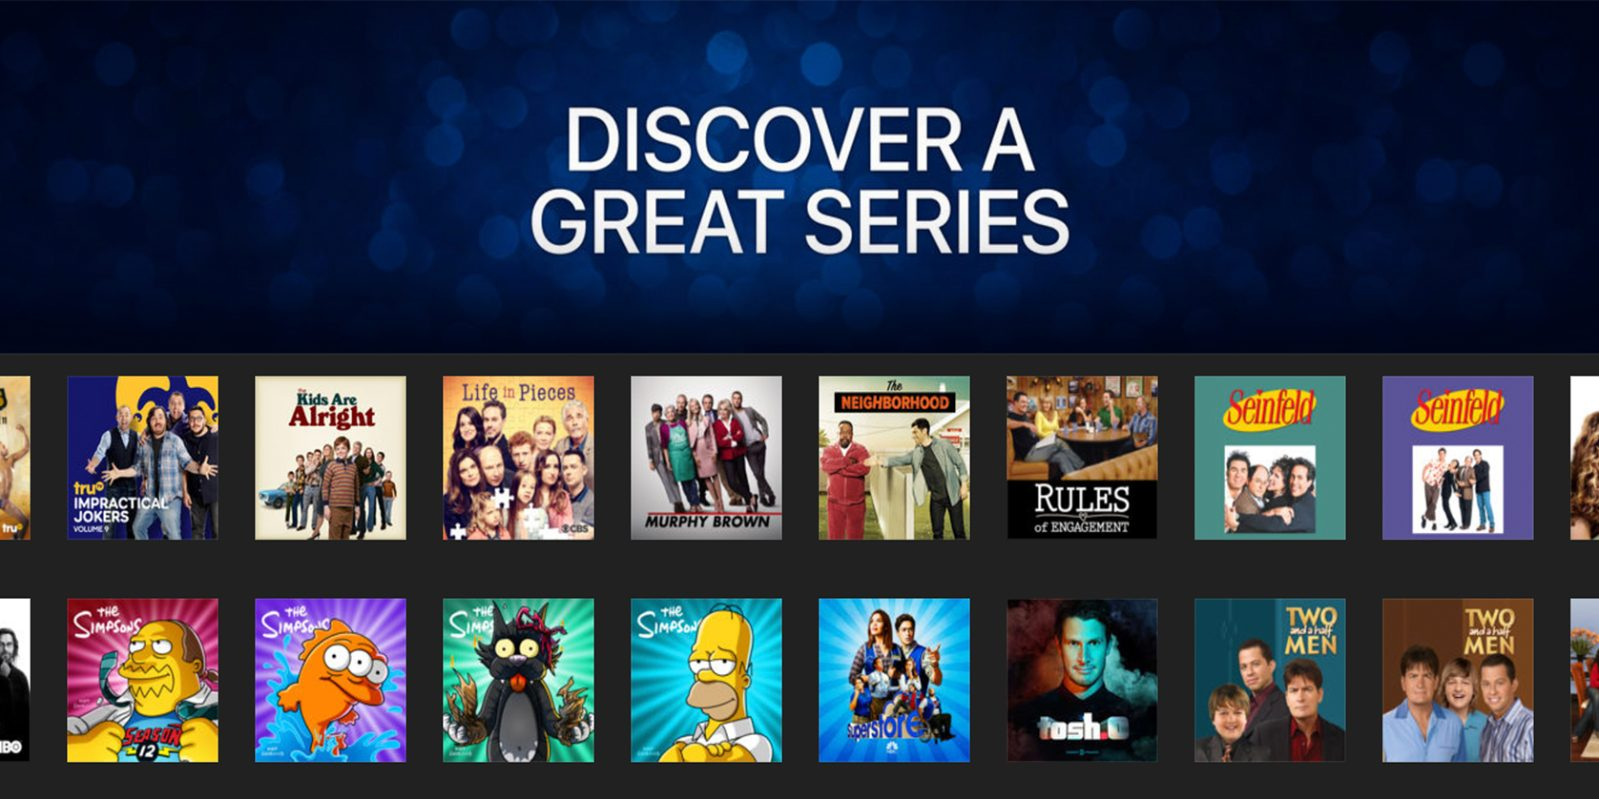 itunes tv show sale from 5 office complete series 30 seinfeld